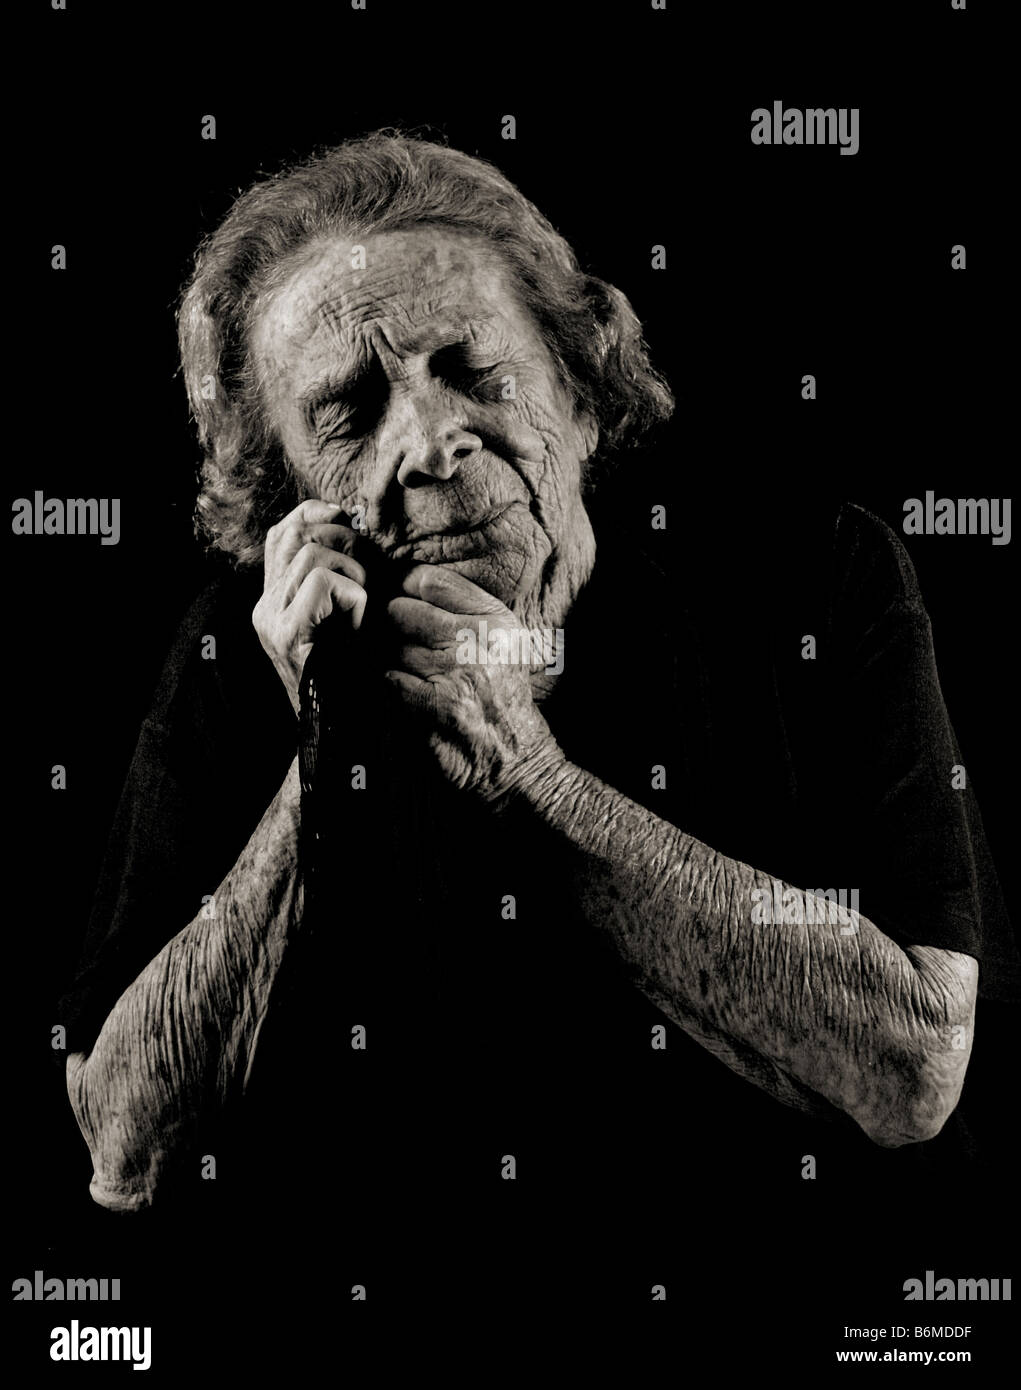 Black and White Portrait of an Elderly Woman Expressing Sadness While Reminiscing - Stock Image